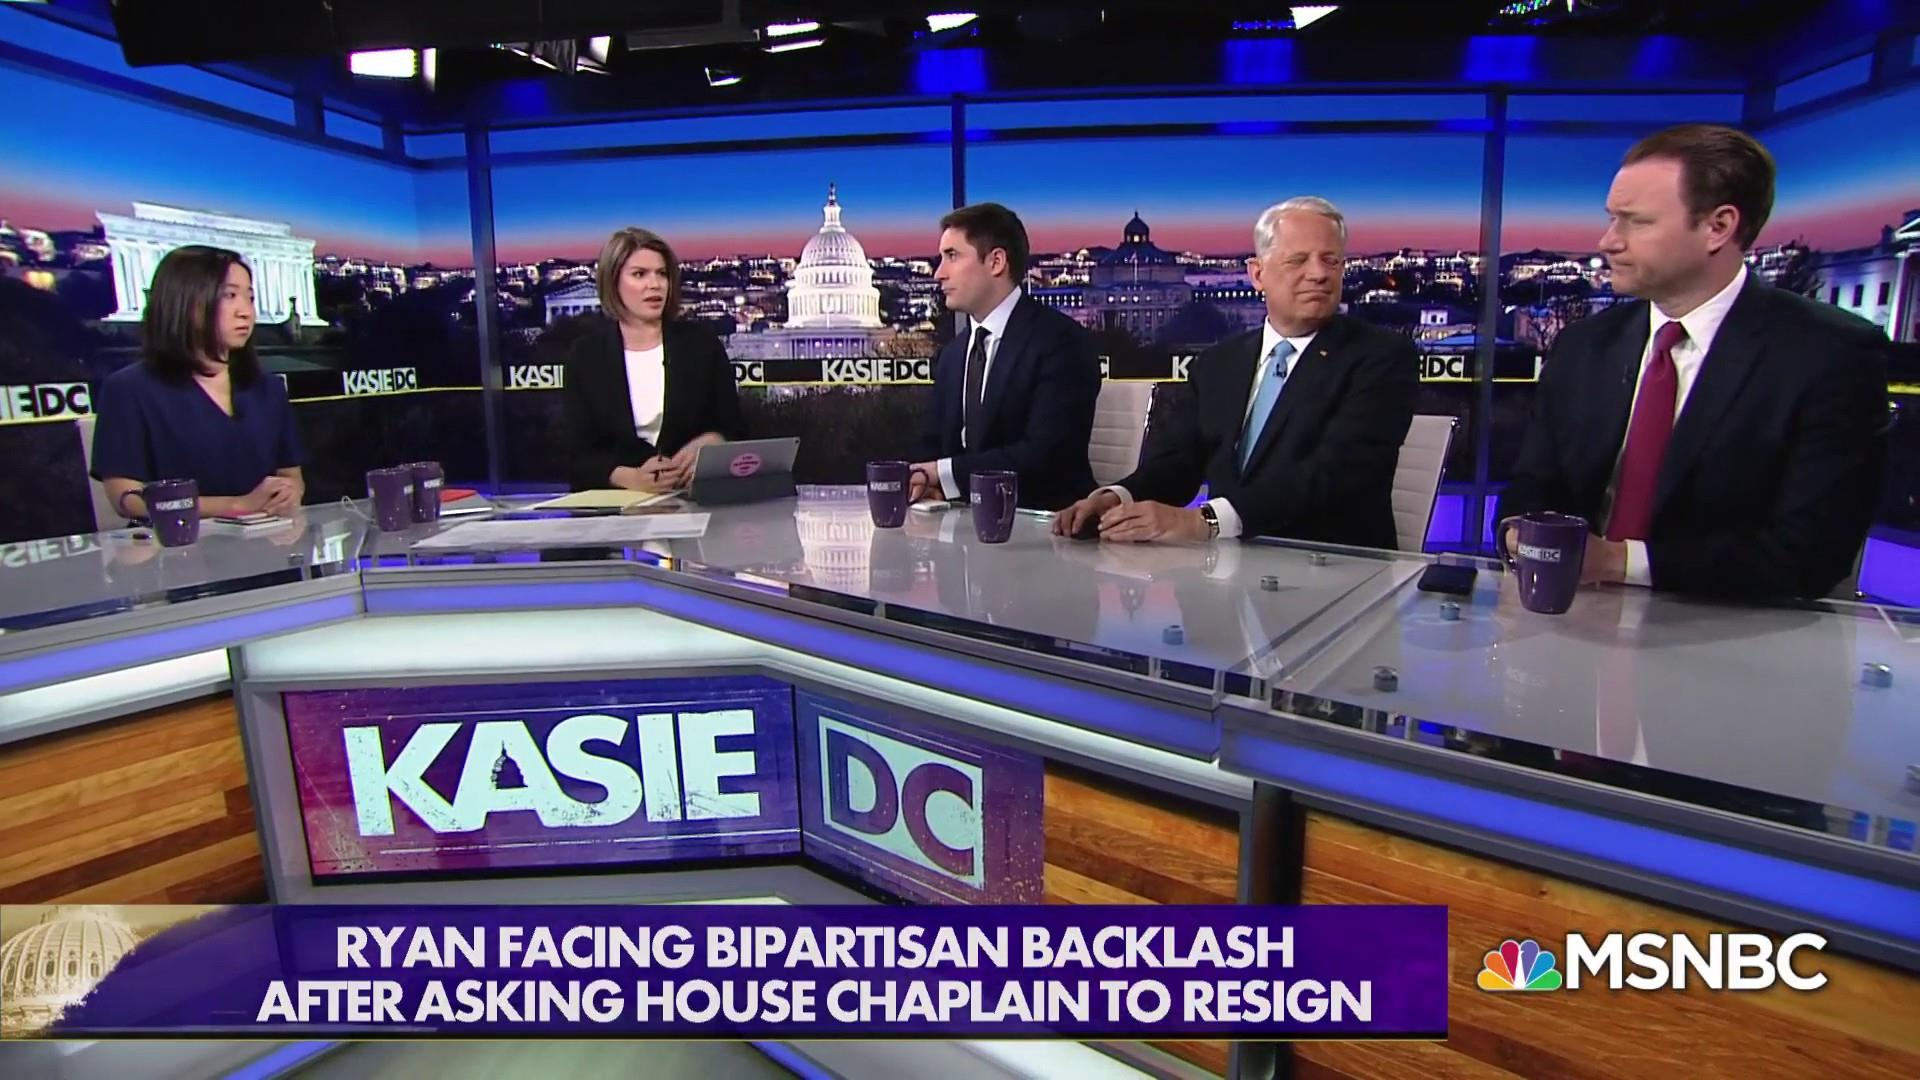 Firing of House Chaplain 'could have been handled better""